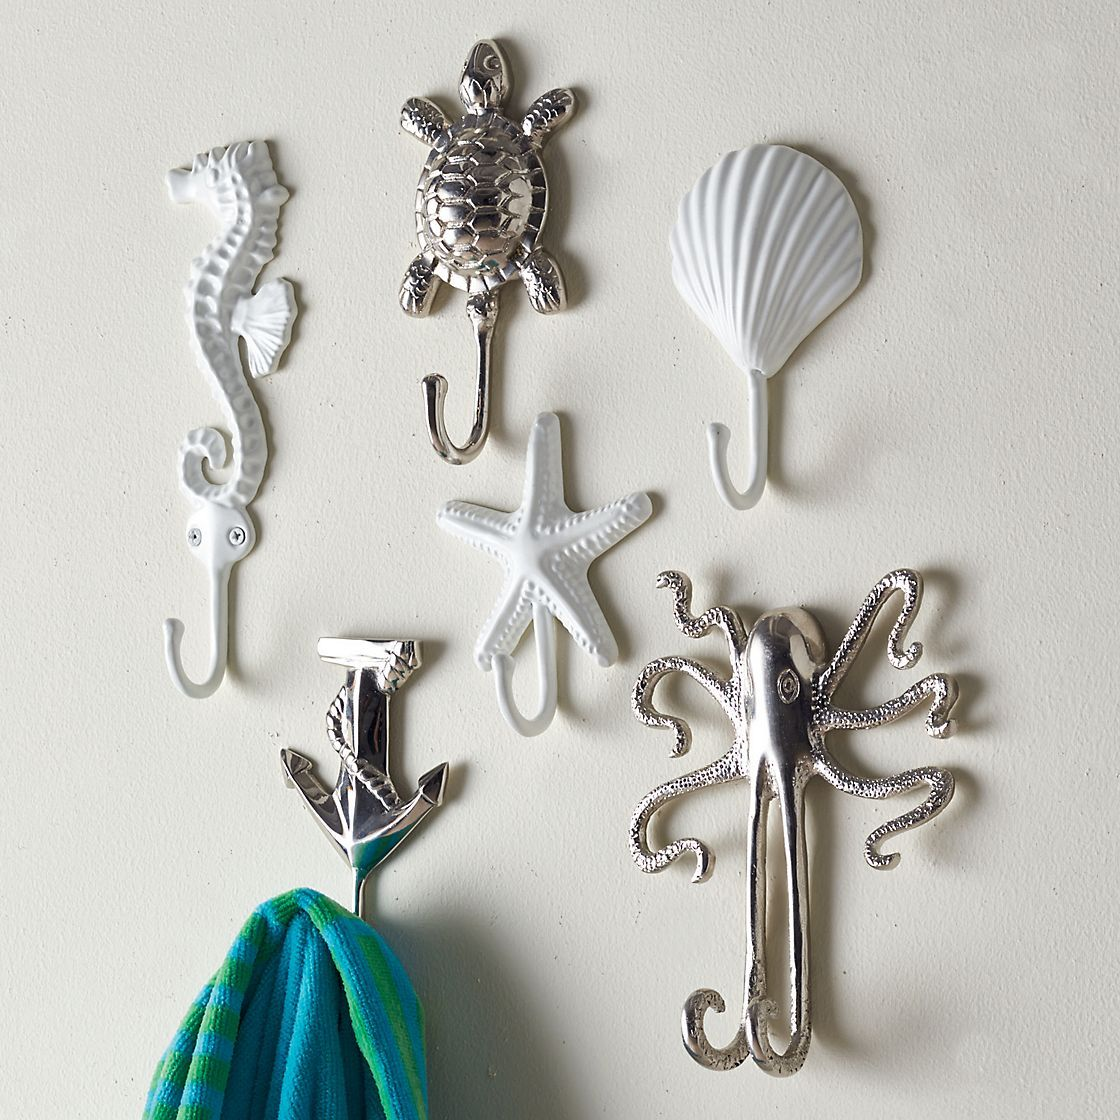 Seaside Towel Hooks The Company Store Summer Preview